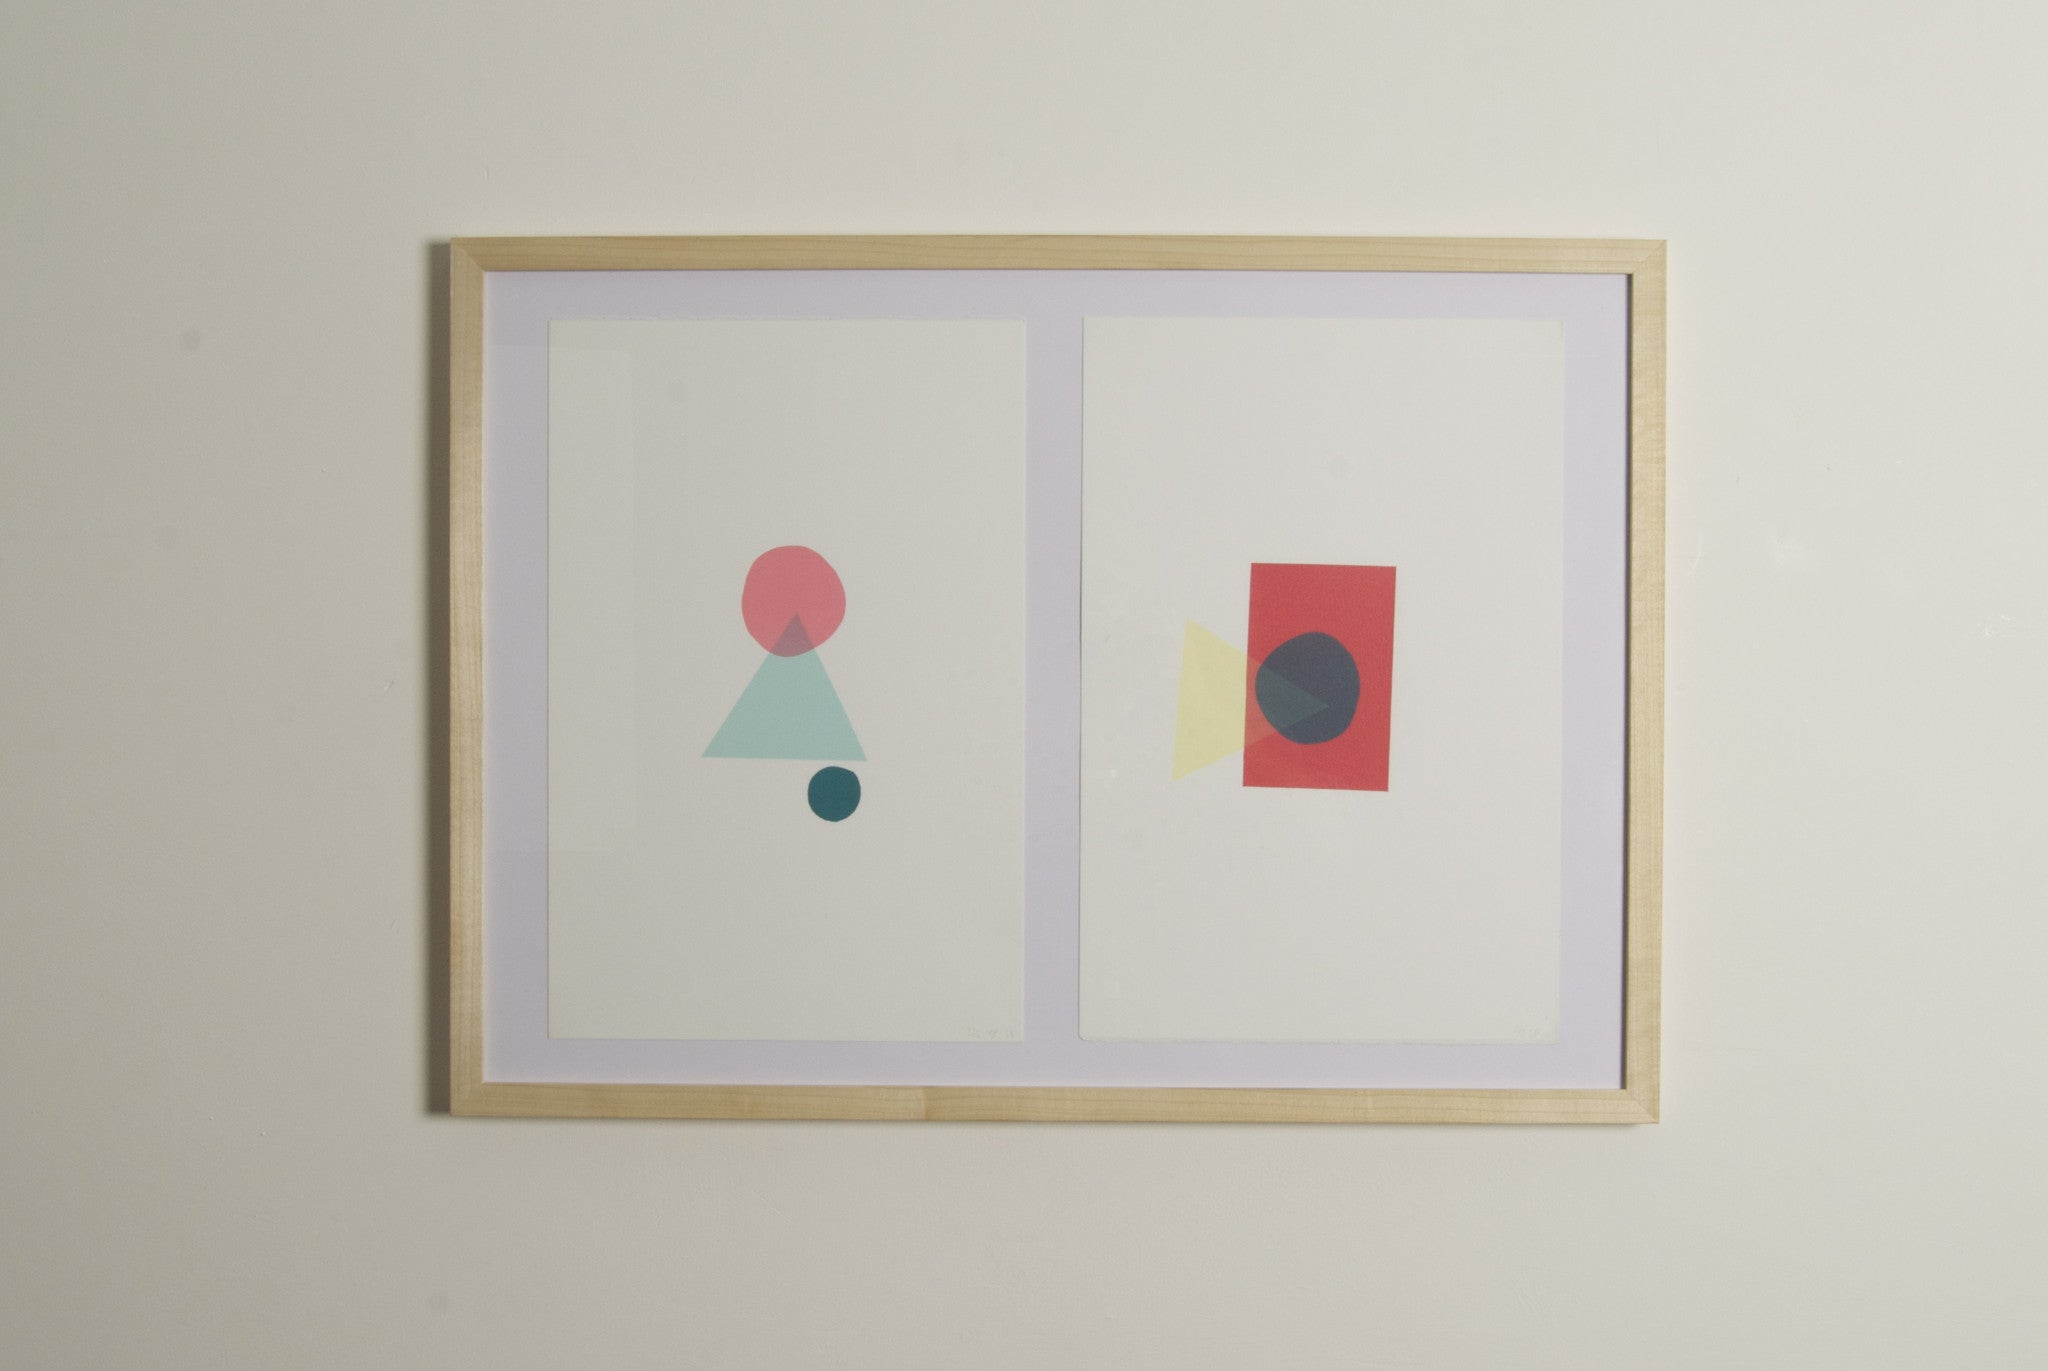 Prints by Saskia Pomeroy